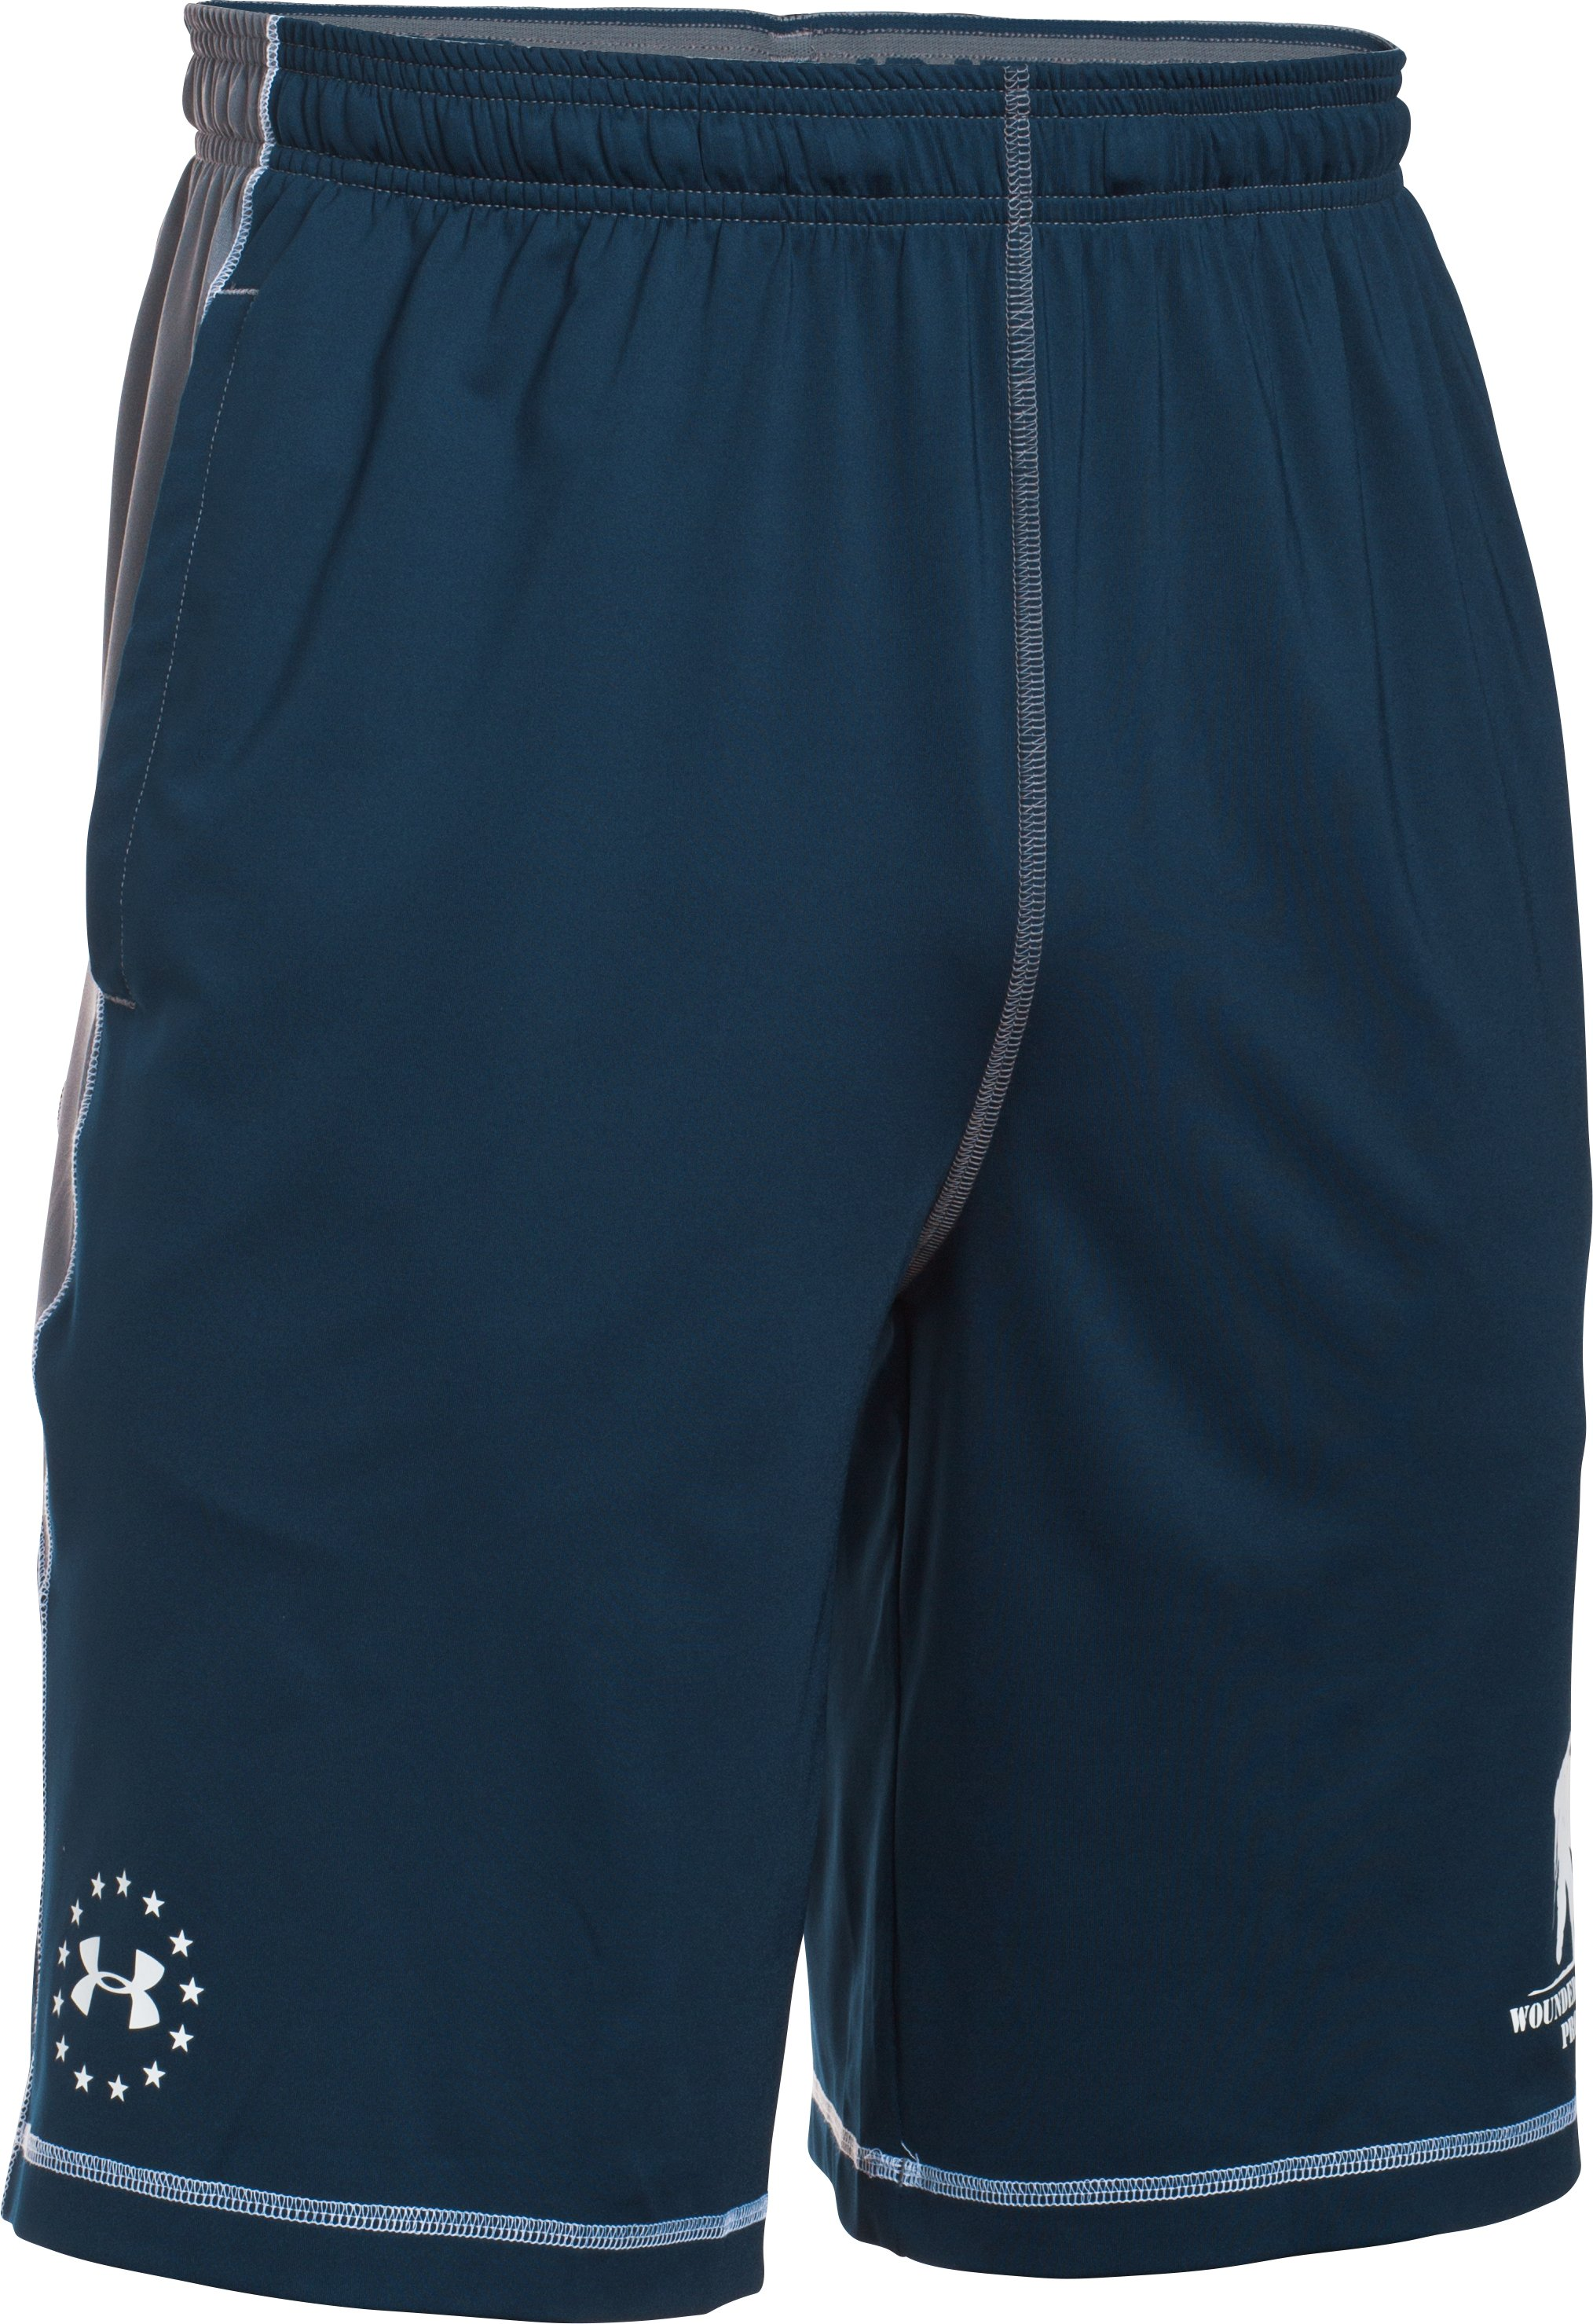 Men's UA WWP Raid Shorts, Academy,